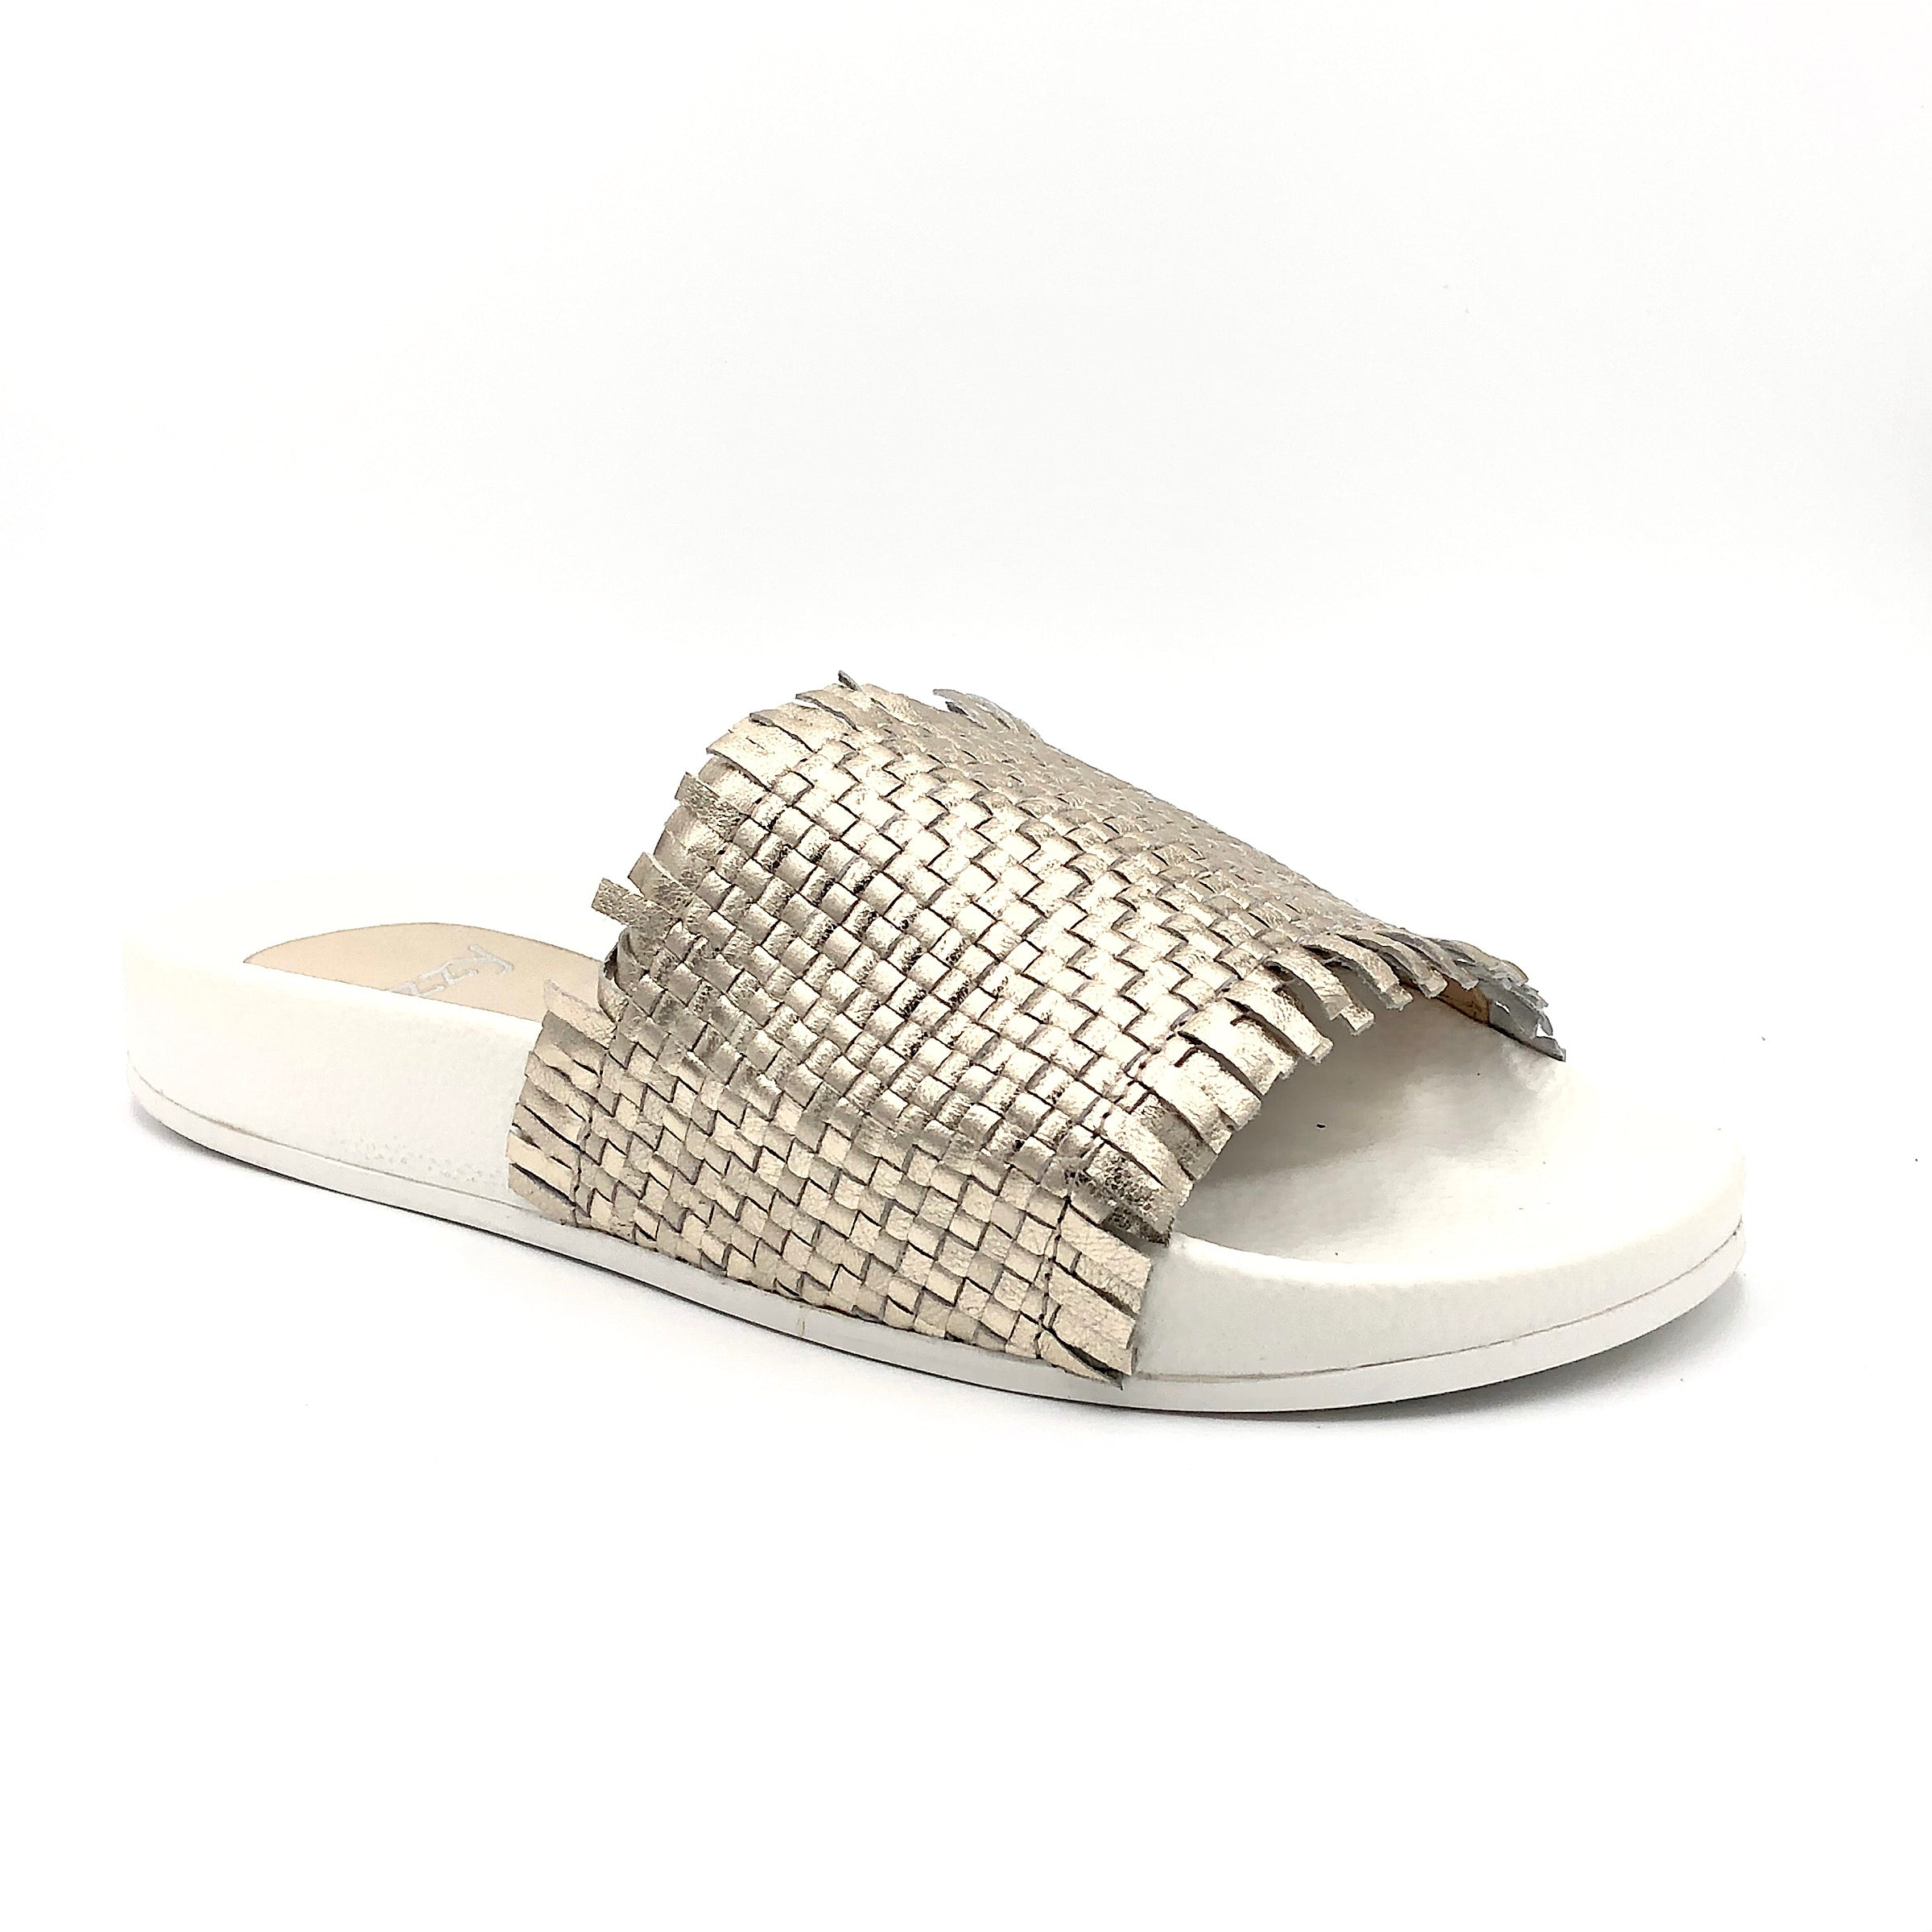 Lizzy B6053 - The Strapless Crop Jumpsuit. Slide into this lux woven leather upper sandal with PVC footbed sole. The metallic upper will add some shine to any outfit! Whole european size only. If you are a half size, larger whole size recommended.